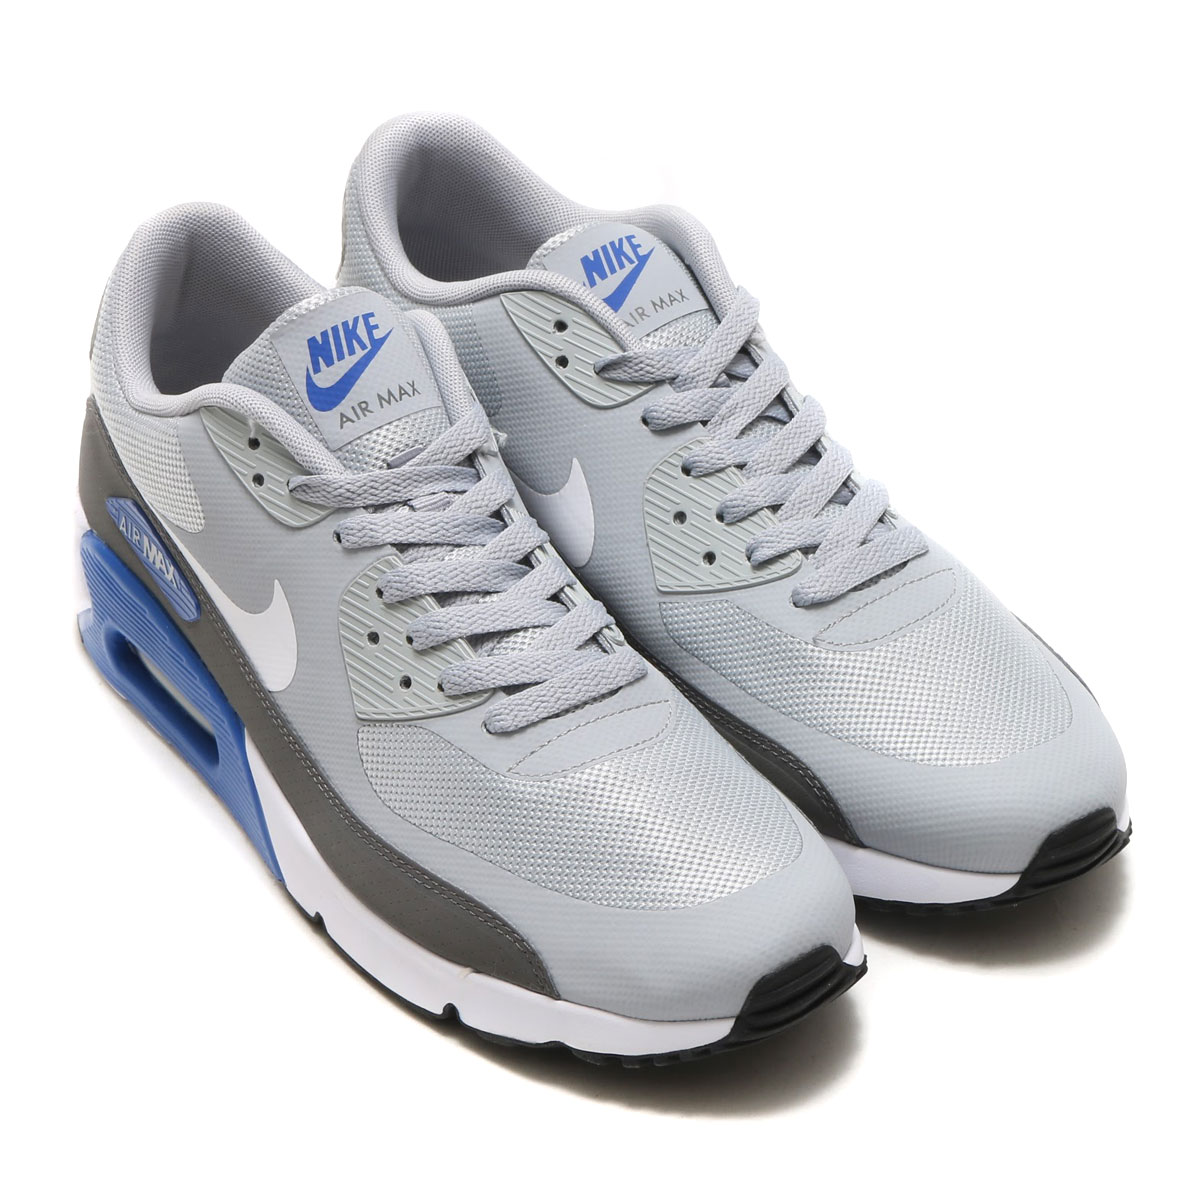 b8d402e170 NIKE AIR MAX 90 ULTRA 2.0 ESSENTIAL (Kie Ney AMAX 90 ultra 2.0 essential)  WOLF GREY WHITE-DARK GREY-GAME ROYAL  men gap Dis sneakers  17SU-I